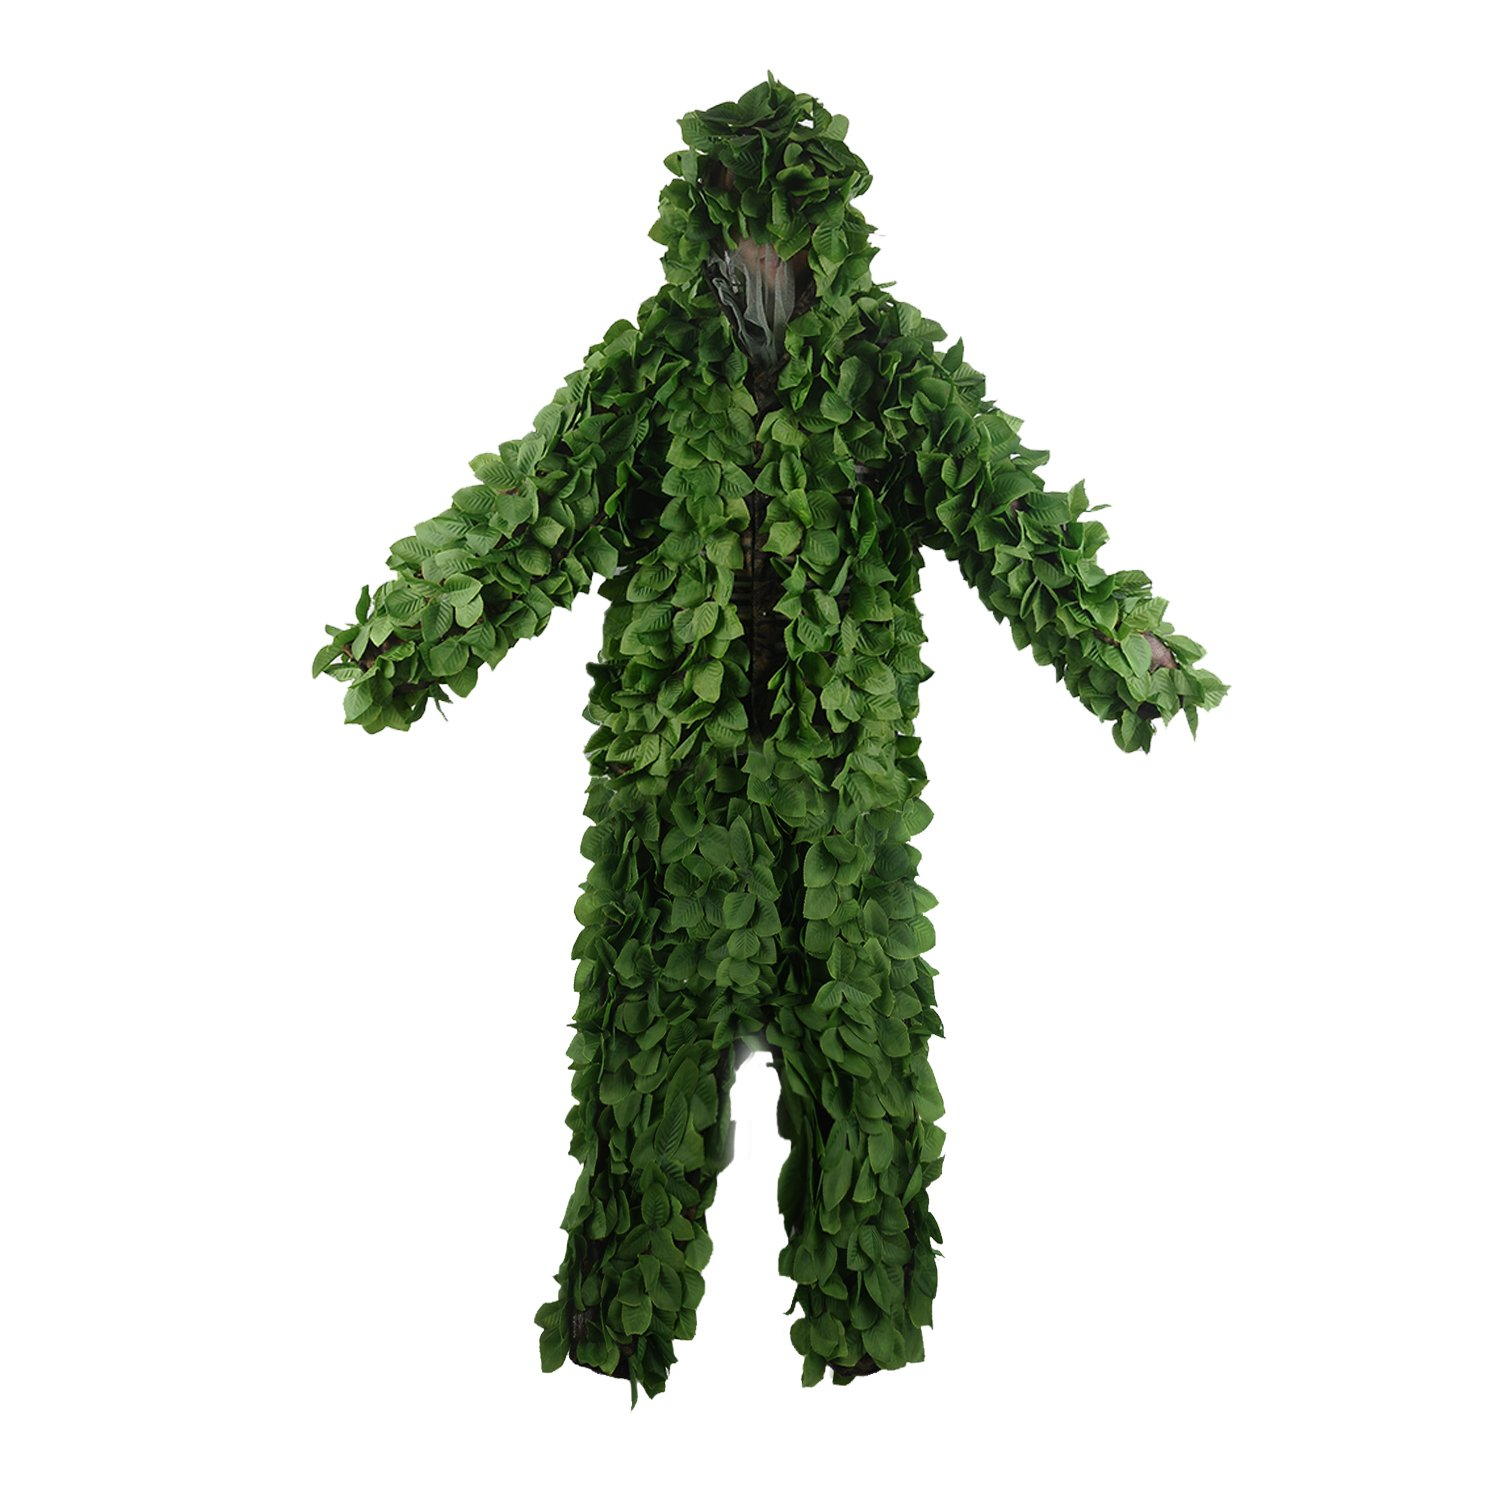 3D Green Leaf Hooded Ghillie Suit 1 8